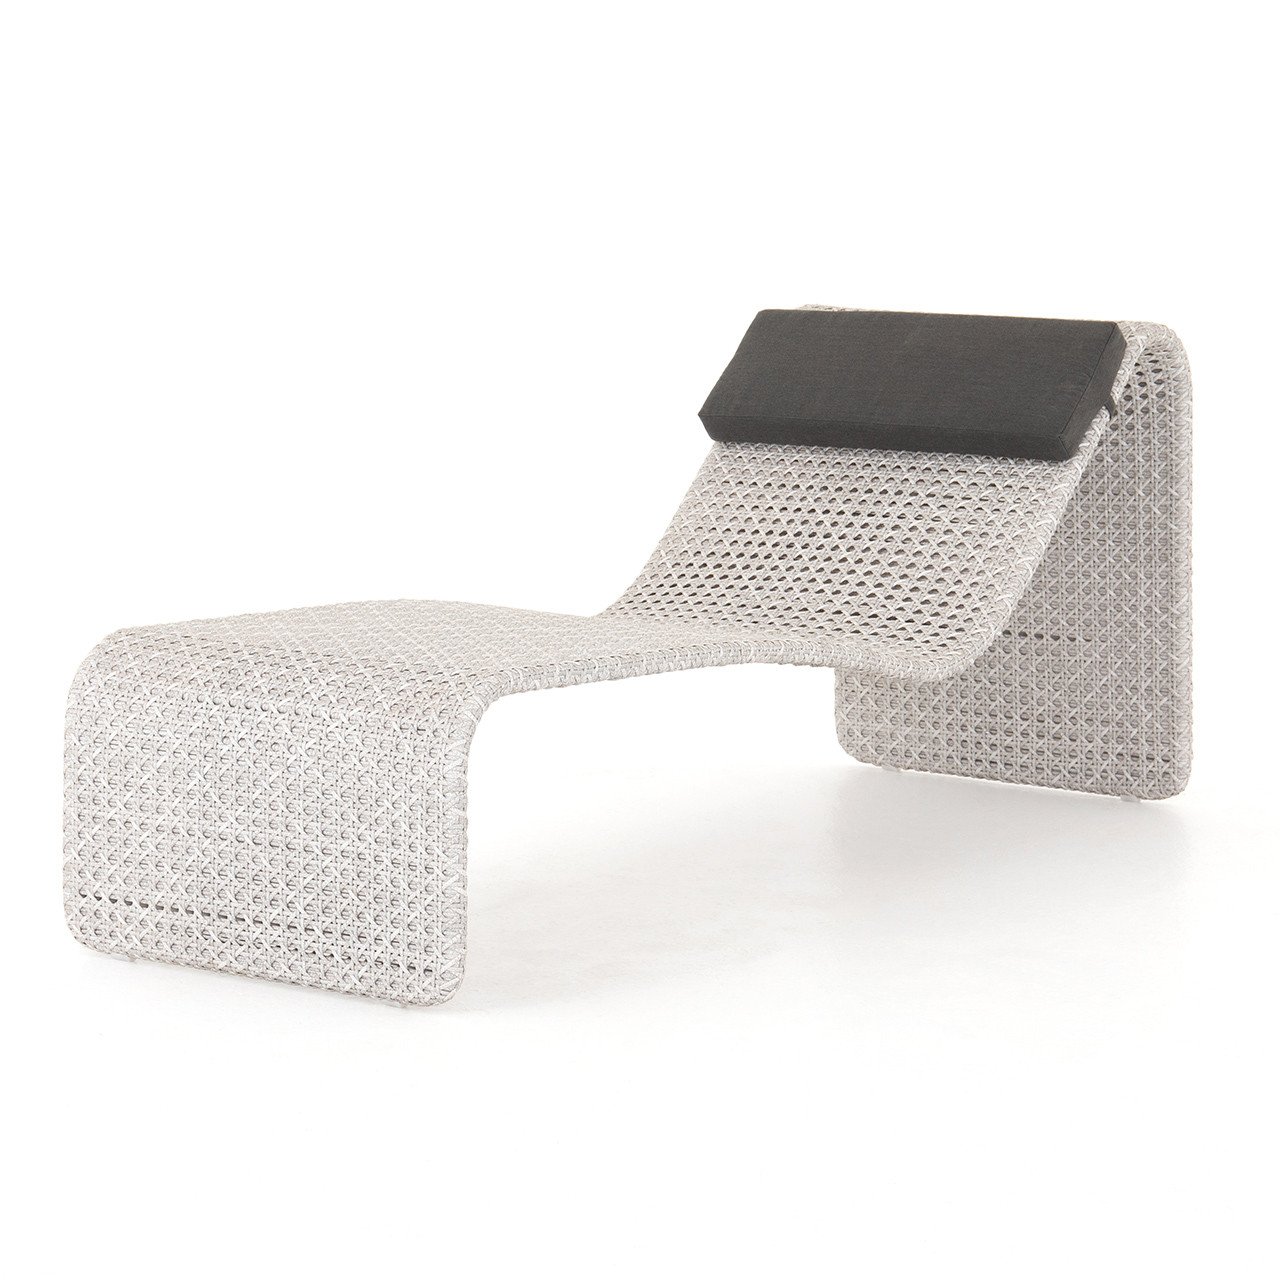 Wave Outdoor Woven Chaise Sunlounger